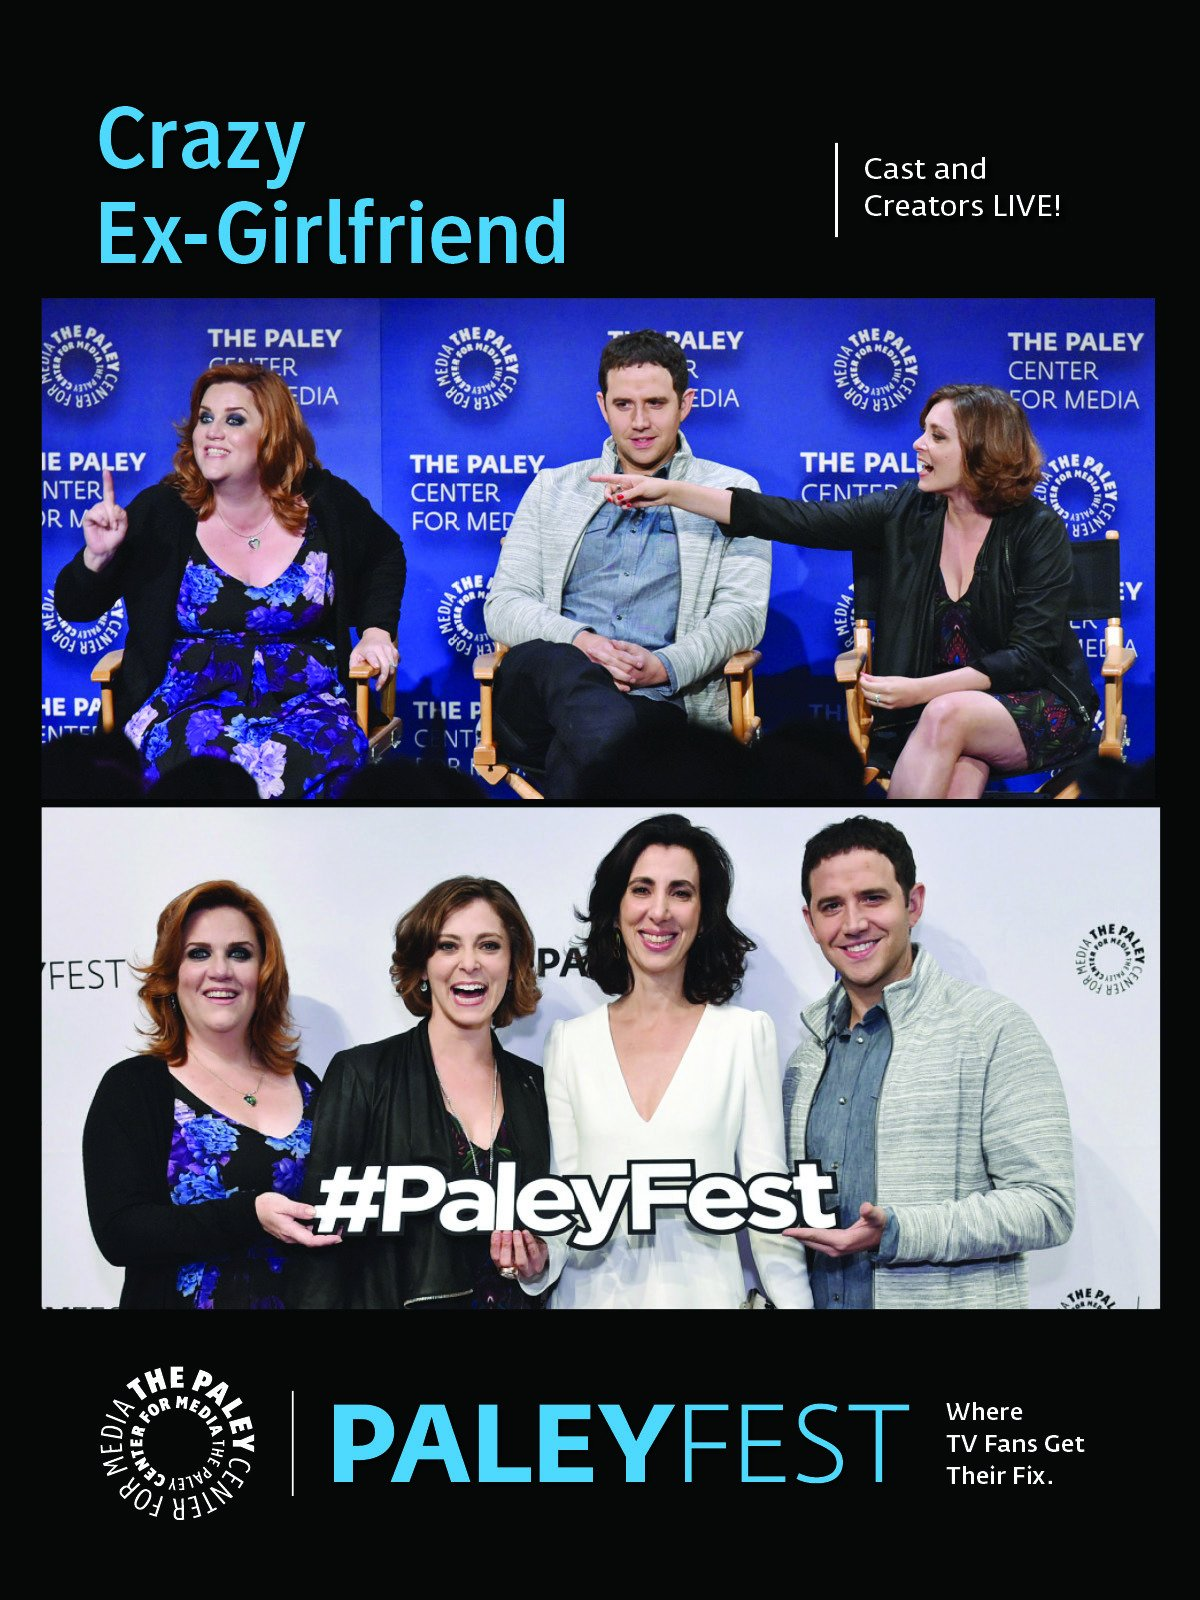 Crazy Ex-Girlfriend: Cast and Creators PaleyFest